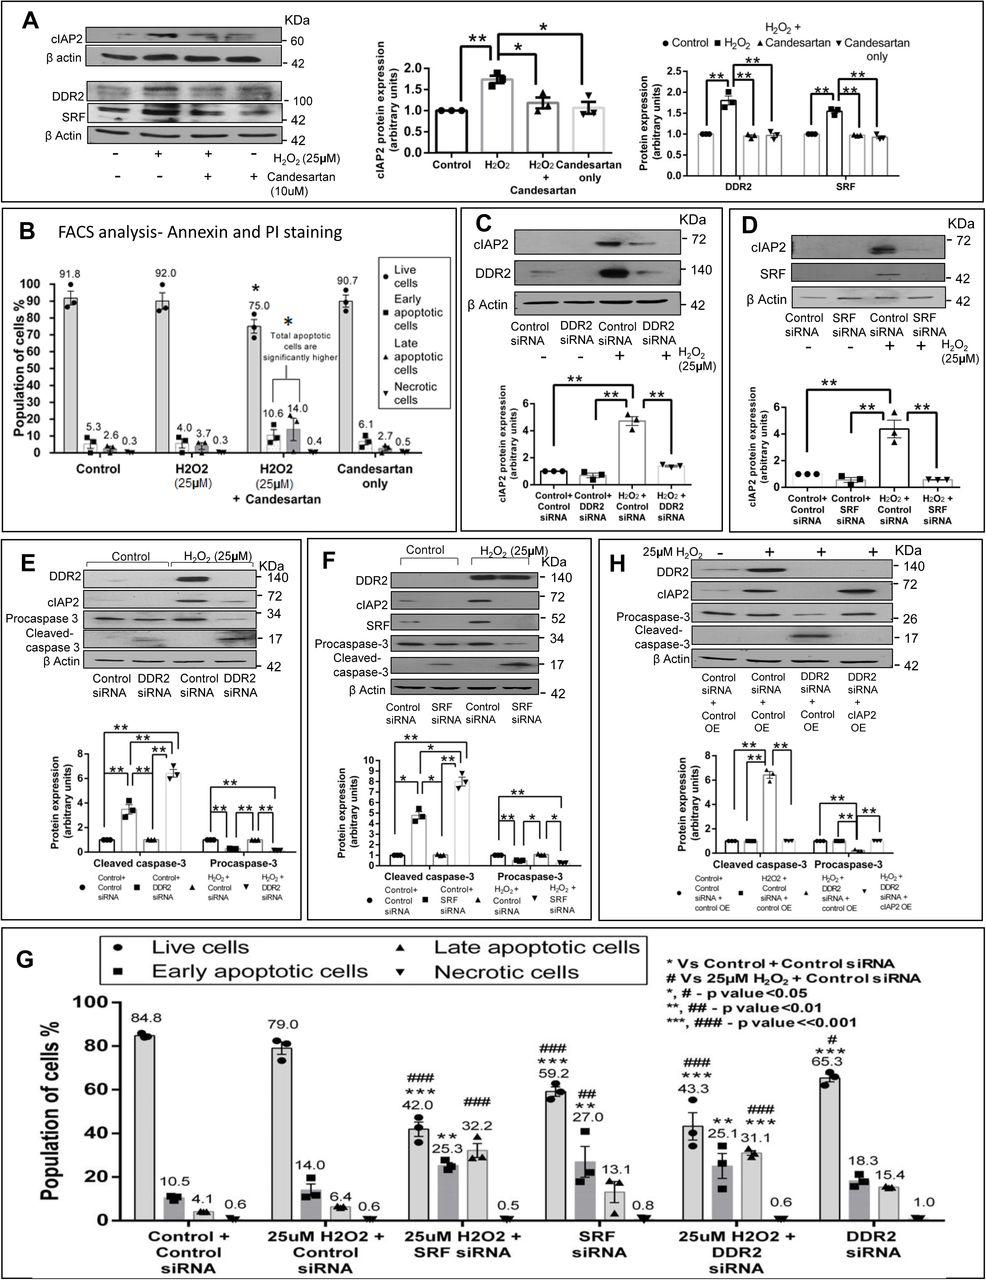 DDR2-dependent cIAP2 expression protects cardiac fibroblasts against oxidative damage. ( A-B ) Effect of AT1 receptor antagonist, Candesartan, on H 2 O 2 -treated cardiac fibroblasts was analysed. Four sets of sub-confluent cultures of cardiac fibroblasts were serum-deprived for 24h: i) no treatment (control), ii) 25μM H 2 O 2 iii) pre-incubated with 10μM candesartan (AT1 receptor antagonist) for 1 h and was treated with 25μM H 2 O 2 iv) 10μM candesartan alone. ( A ) Cells were collected 12h post-H 2 O 2 addition and analysed by western blot for the expression of cIAP2, DDR2 and SRF, with β-actin as loading control. Significance was determined by two-way ANOVA (Tukey's multiple comparisons test, *p